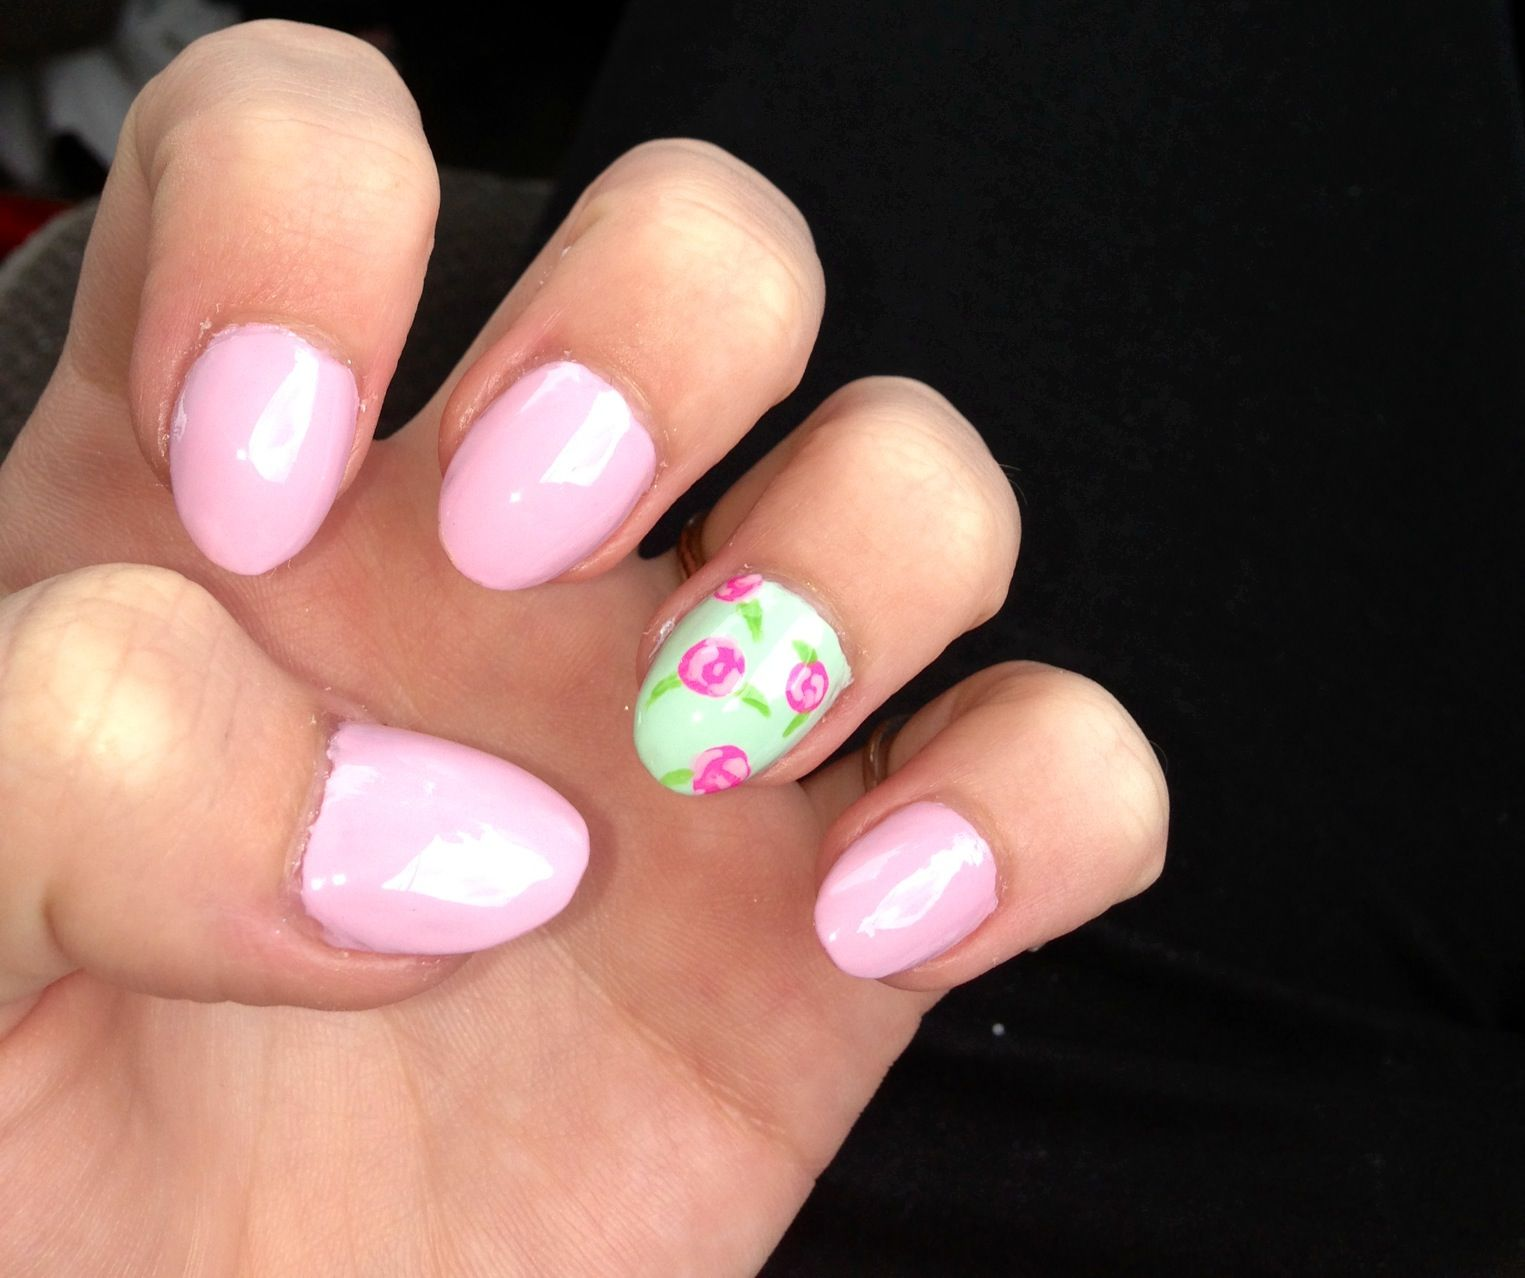 Acrylic Nails Fashion Design Flowers Green Pink almond shaped luv ...